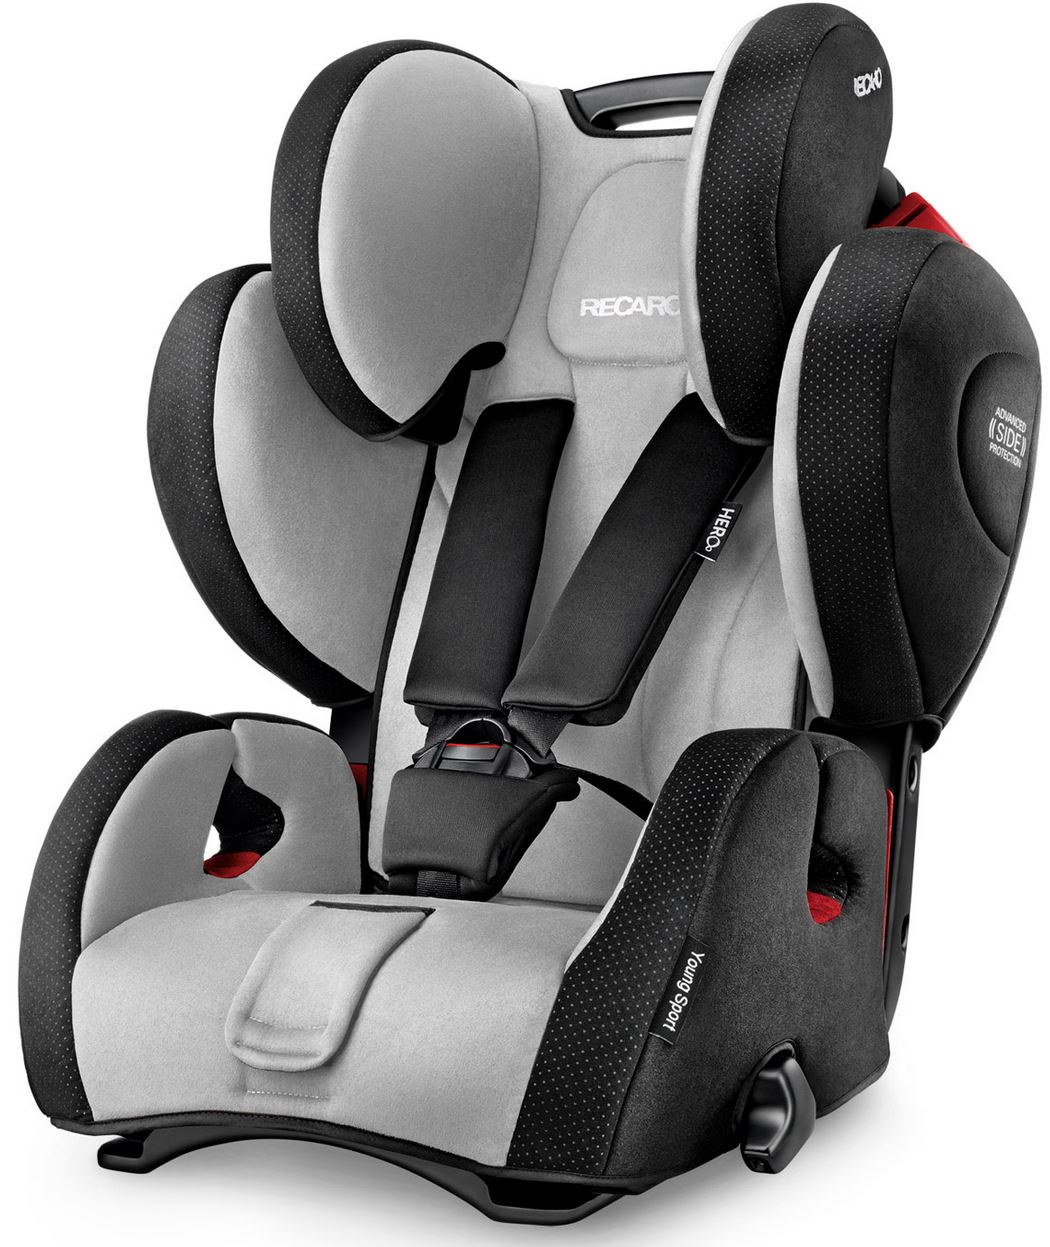 recaro young sport hero instructions